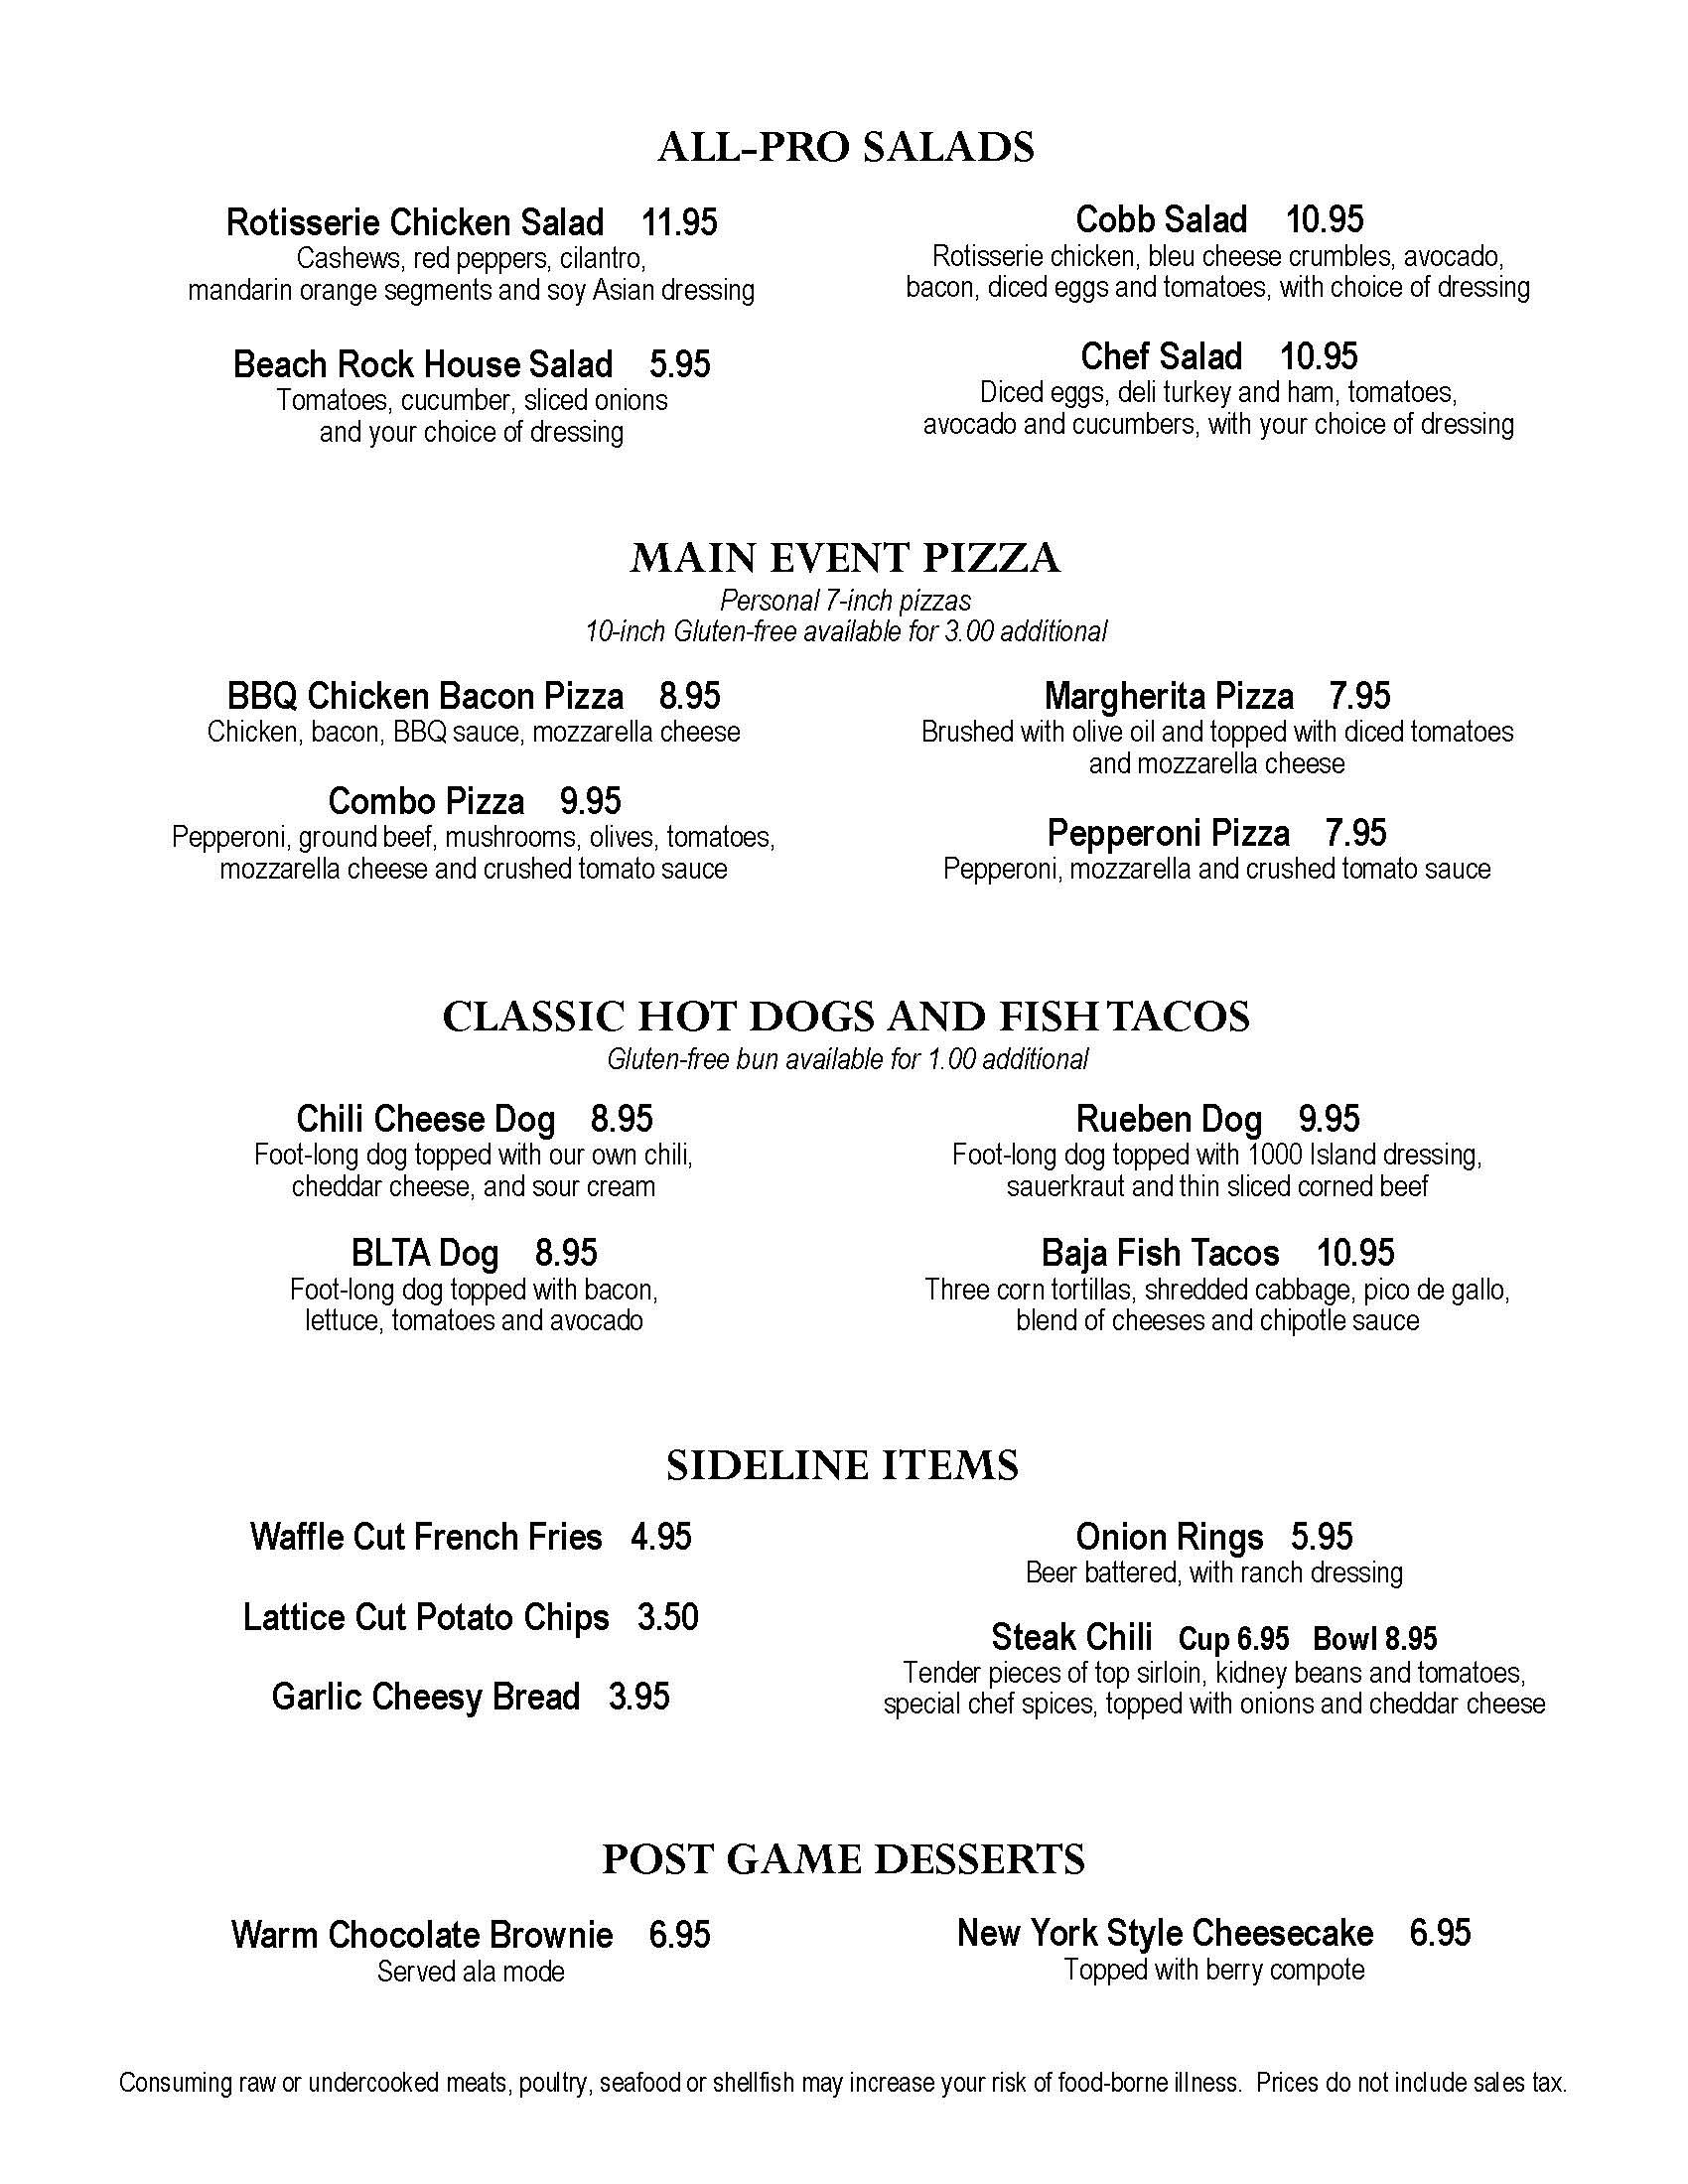 Beach Rock Food Menu 060117_Page_2.jpg